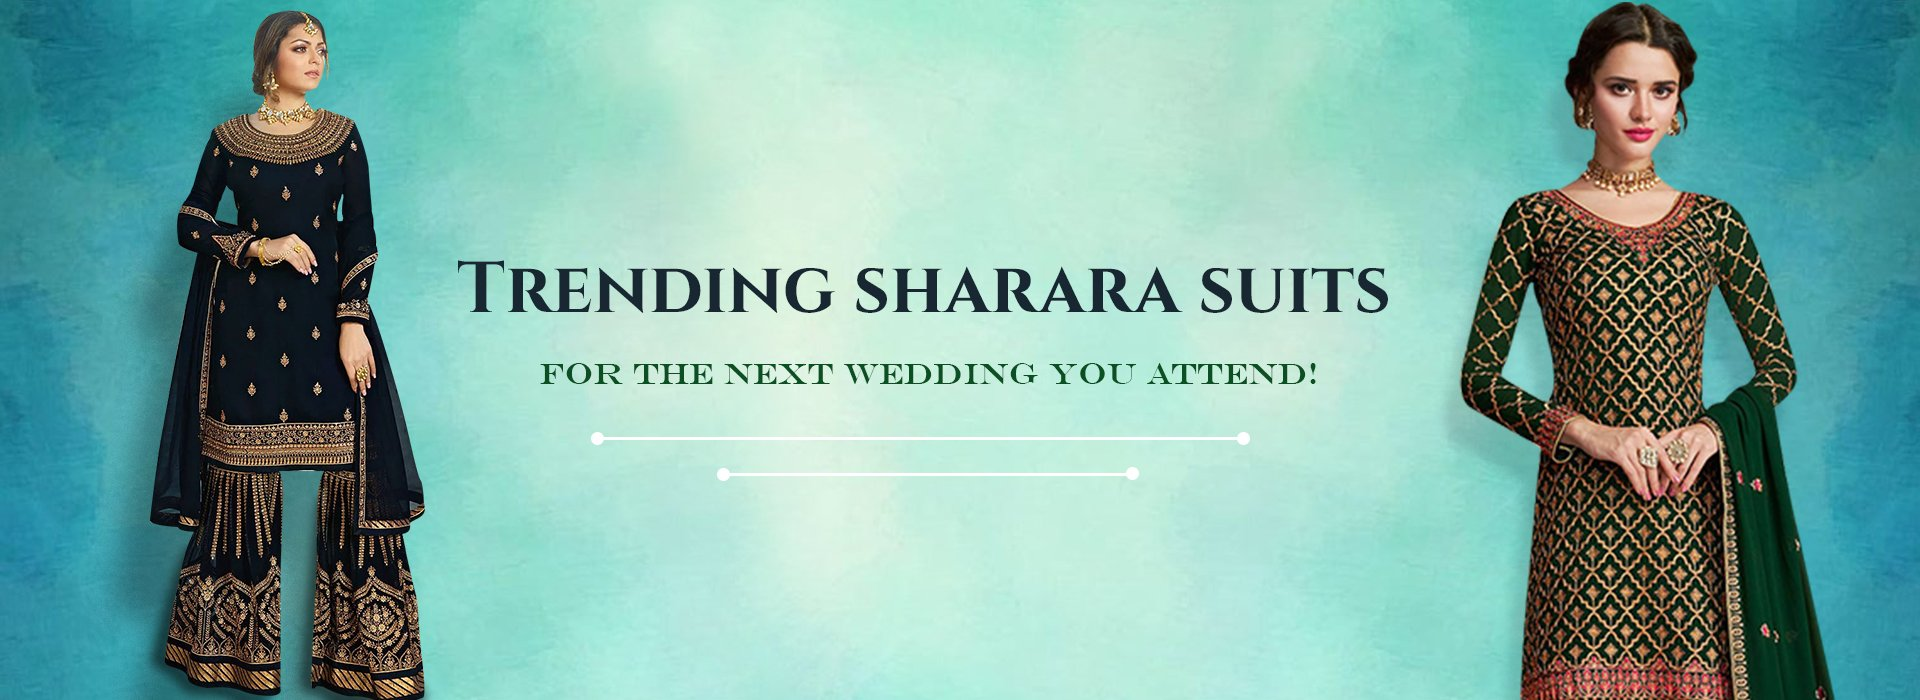 Trending Sharara Suits For The Next Wedding You Attend!